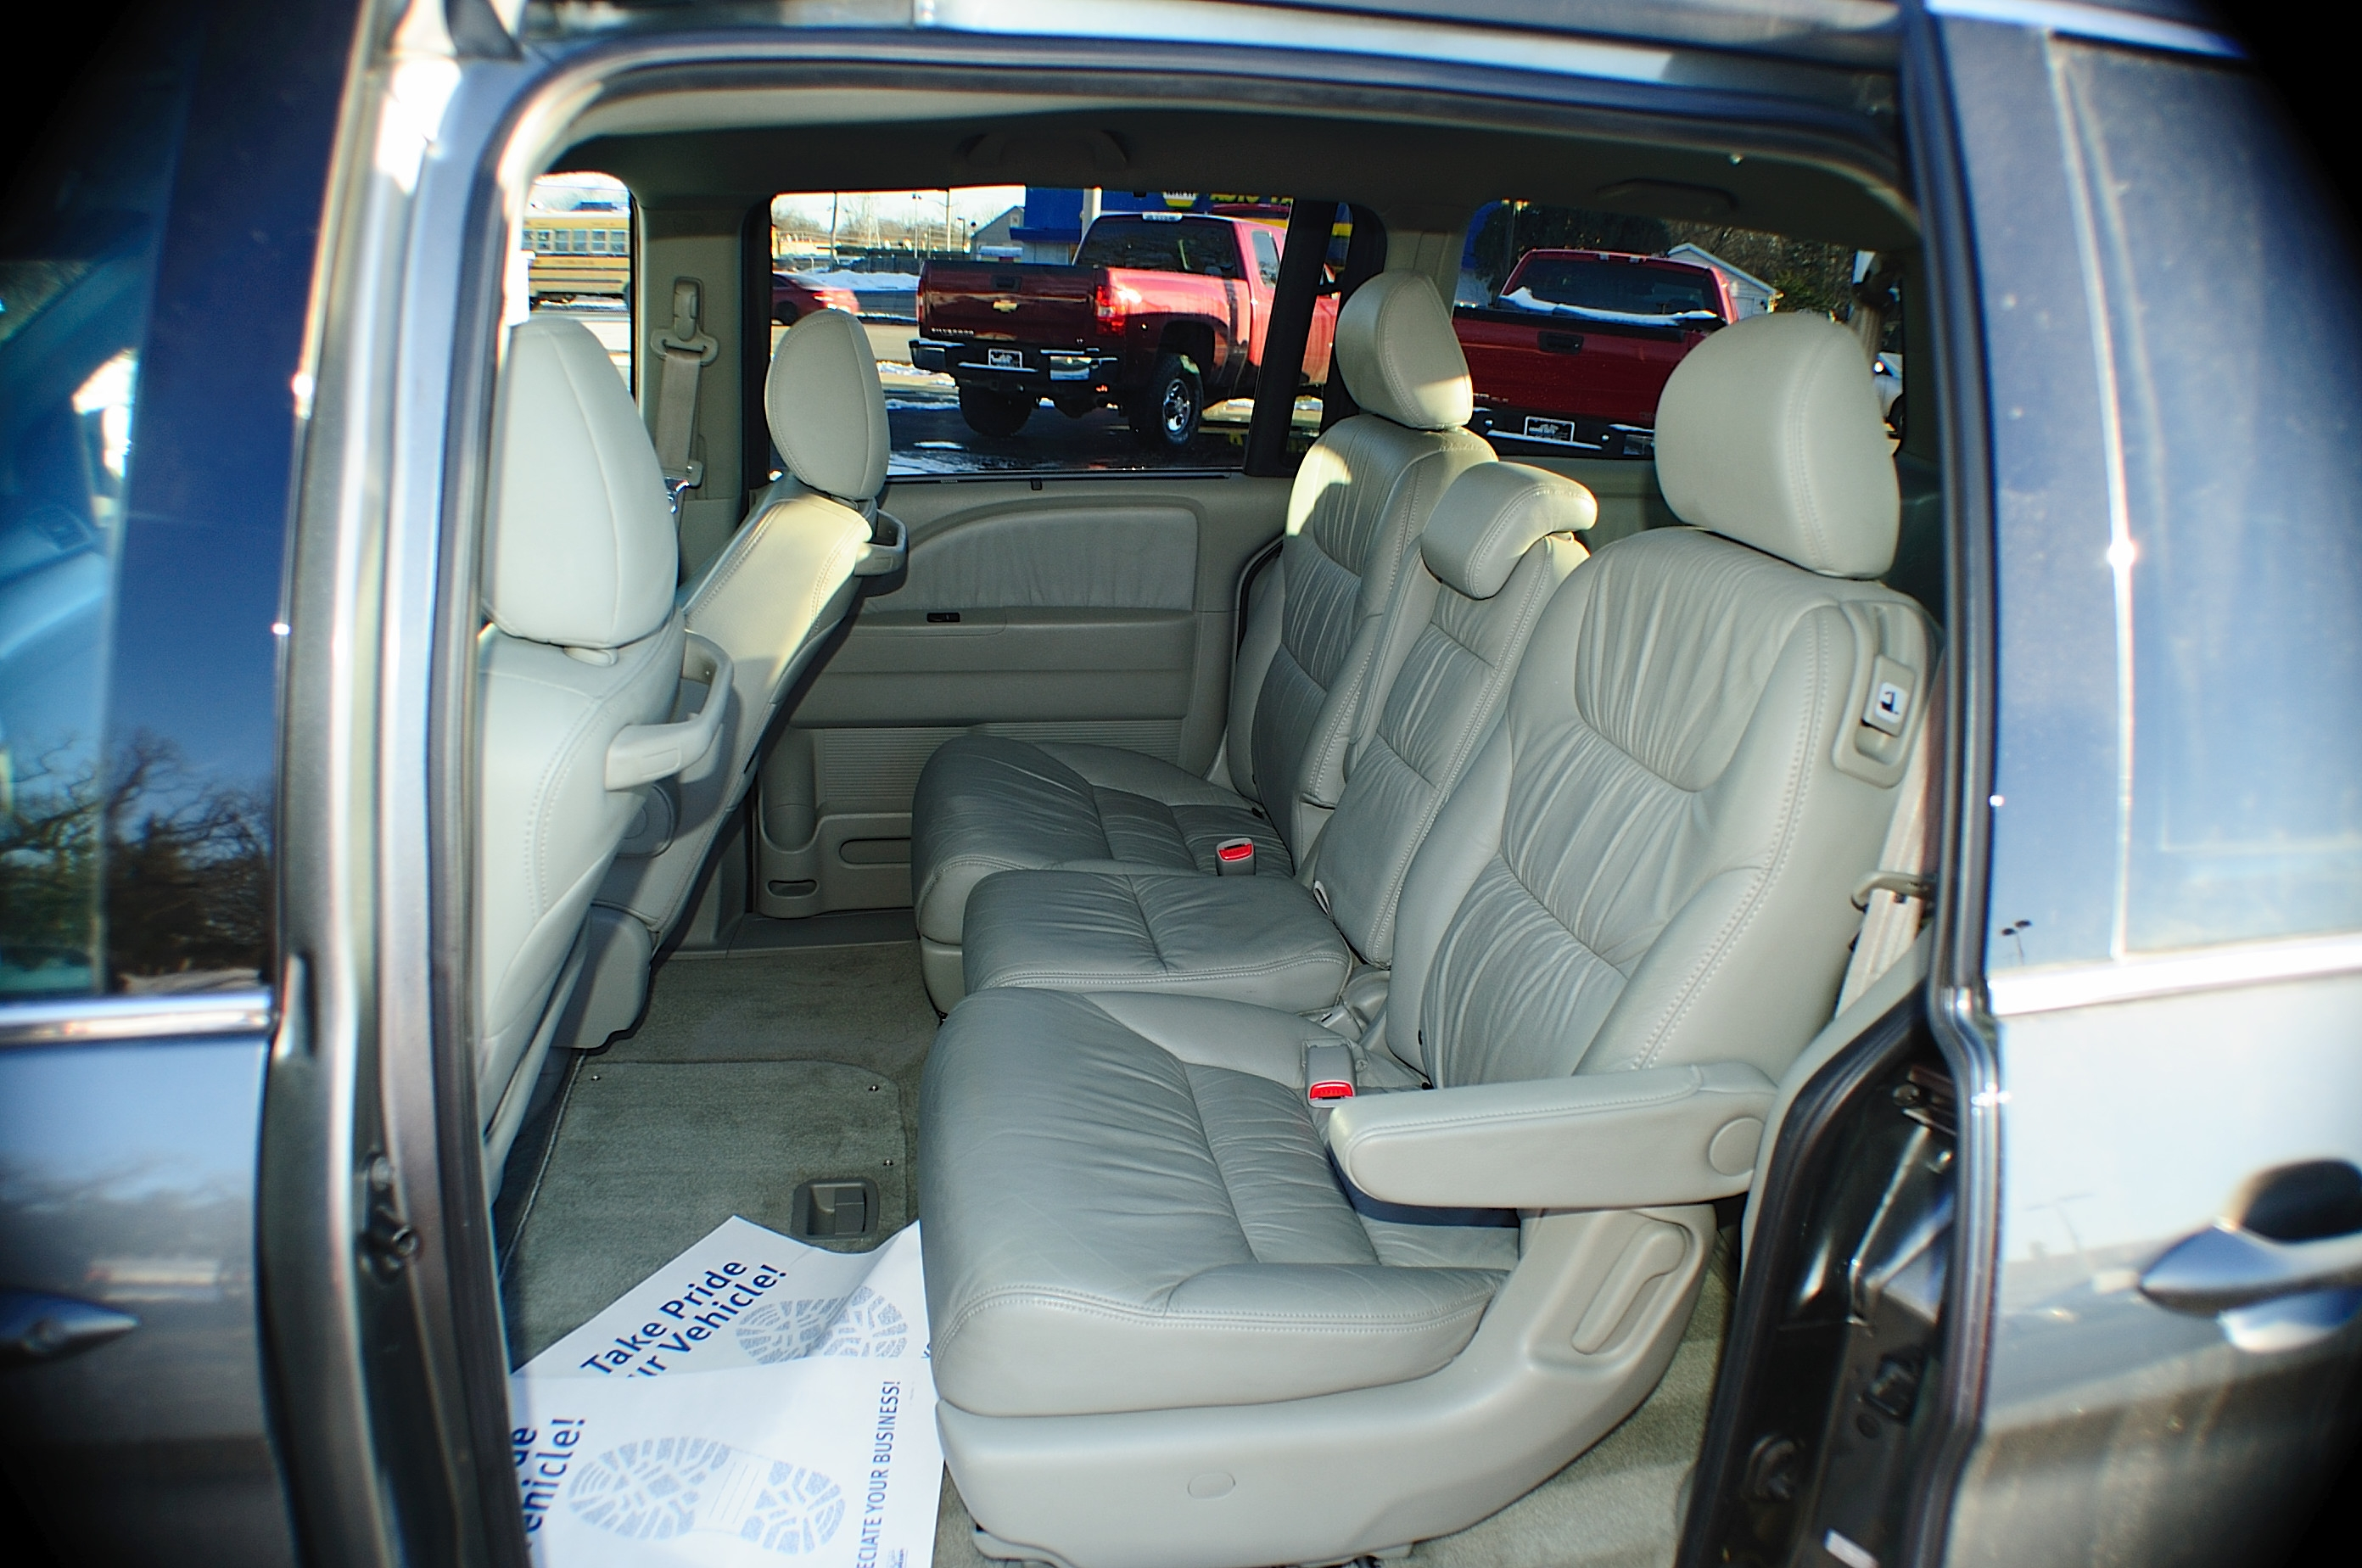 2008 Honda Odyssey Bronze used Mini Van Sale Lake Zurich Lakemoor Libertyville Lincolnshire